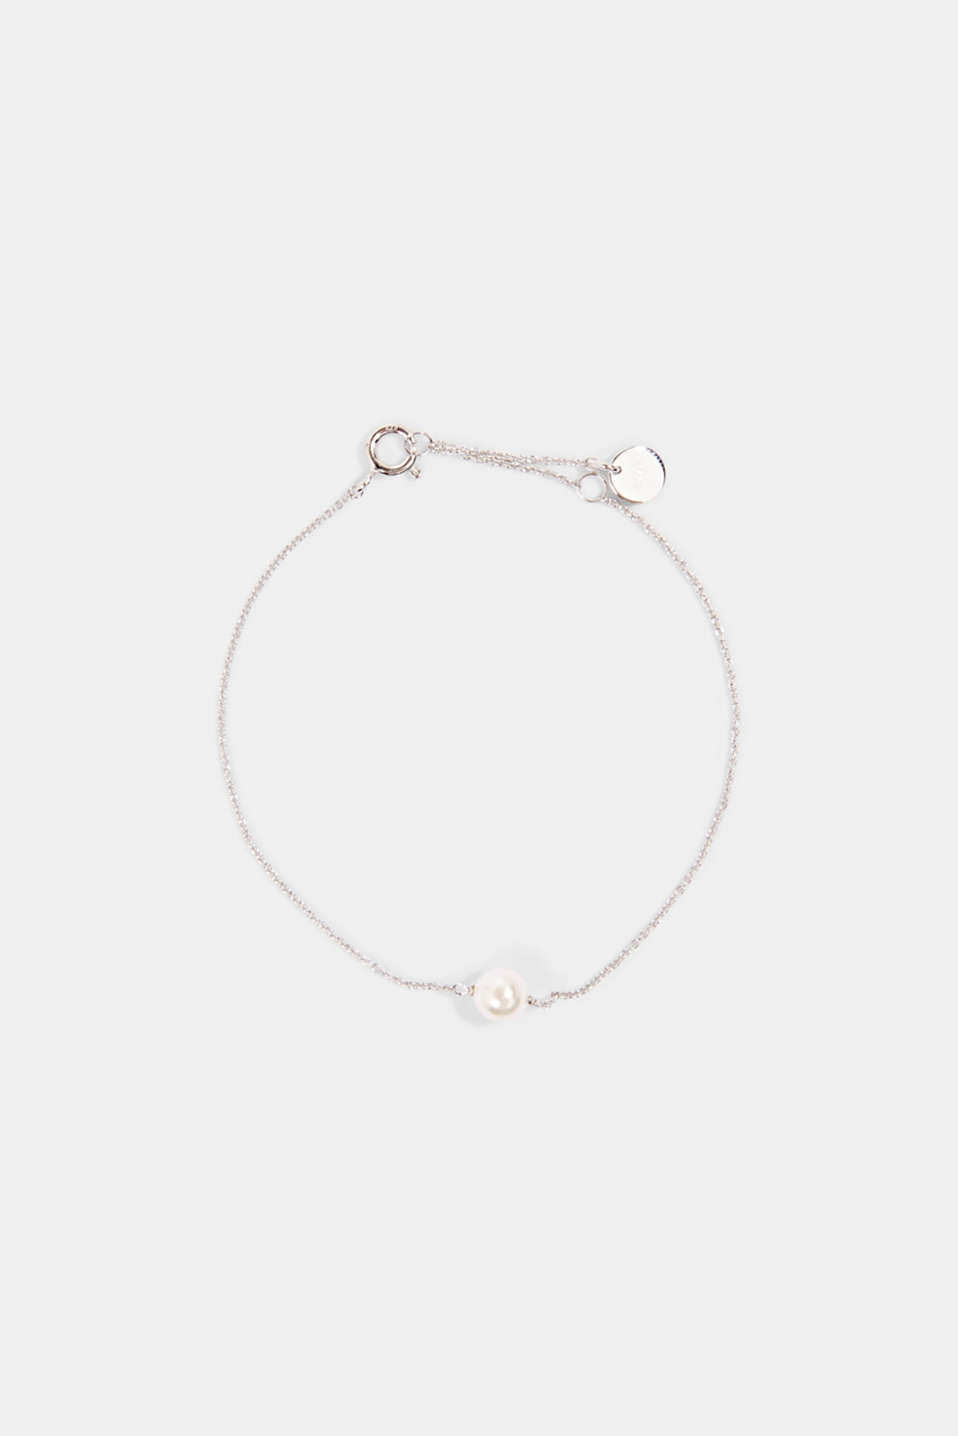 Esprit - Fine, faux pearl detail bracelet made of sterling silver